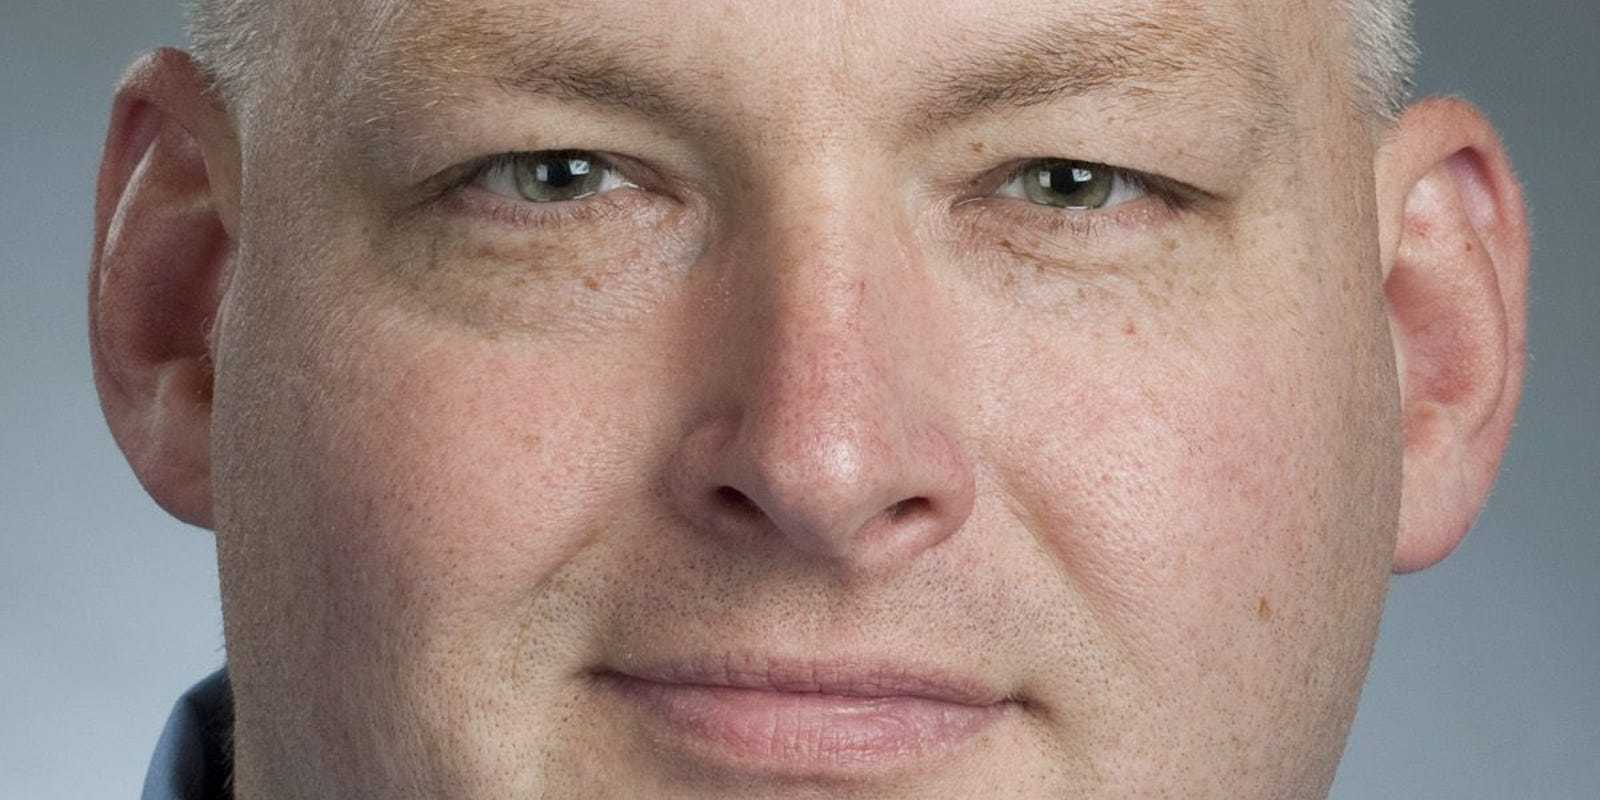 Oconomowoc alderman lost appeal to be on the spring mayoral ballot. Now he'll run as a write-in candidate.